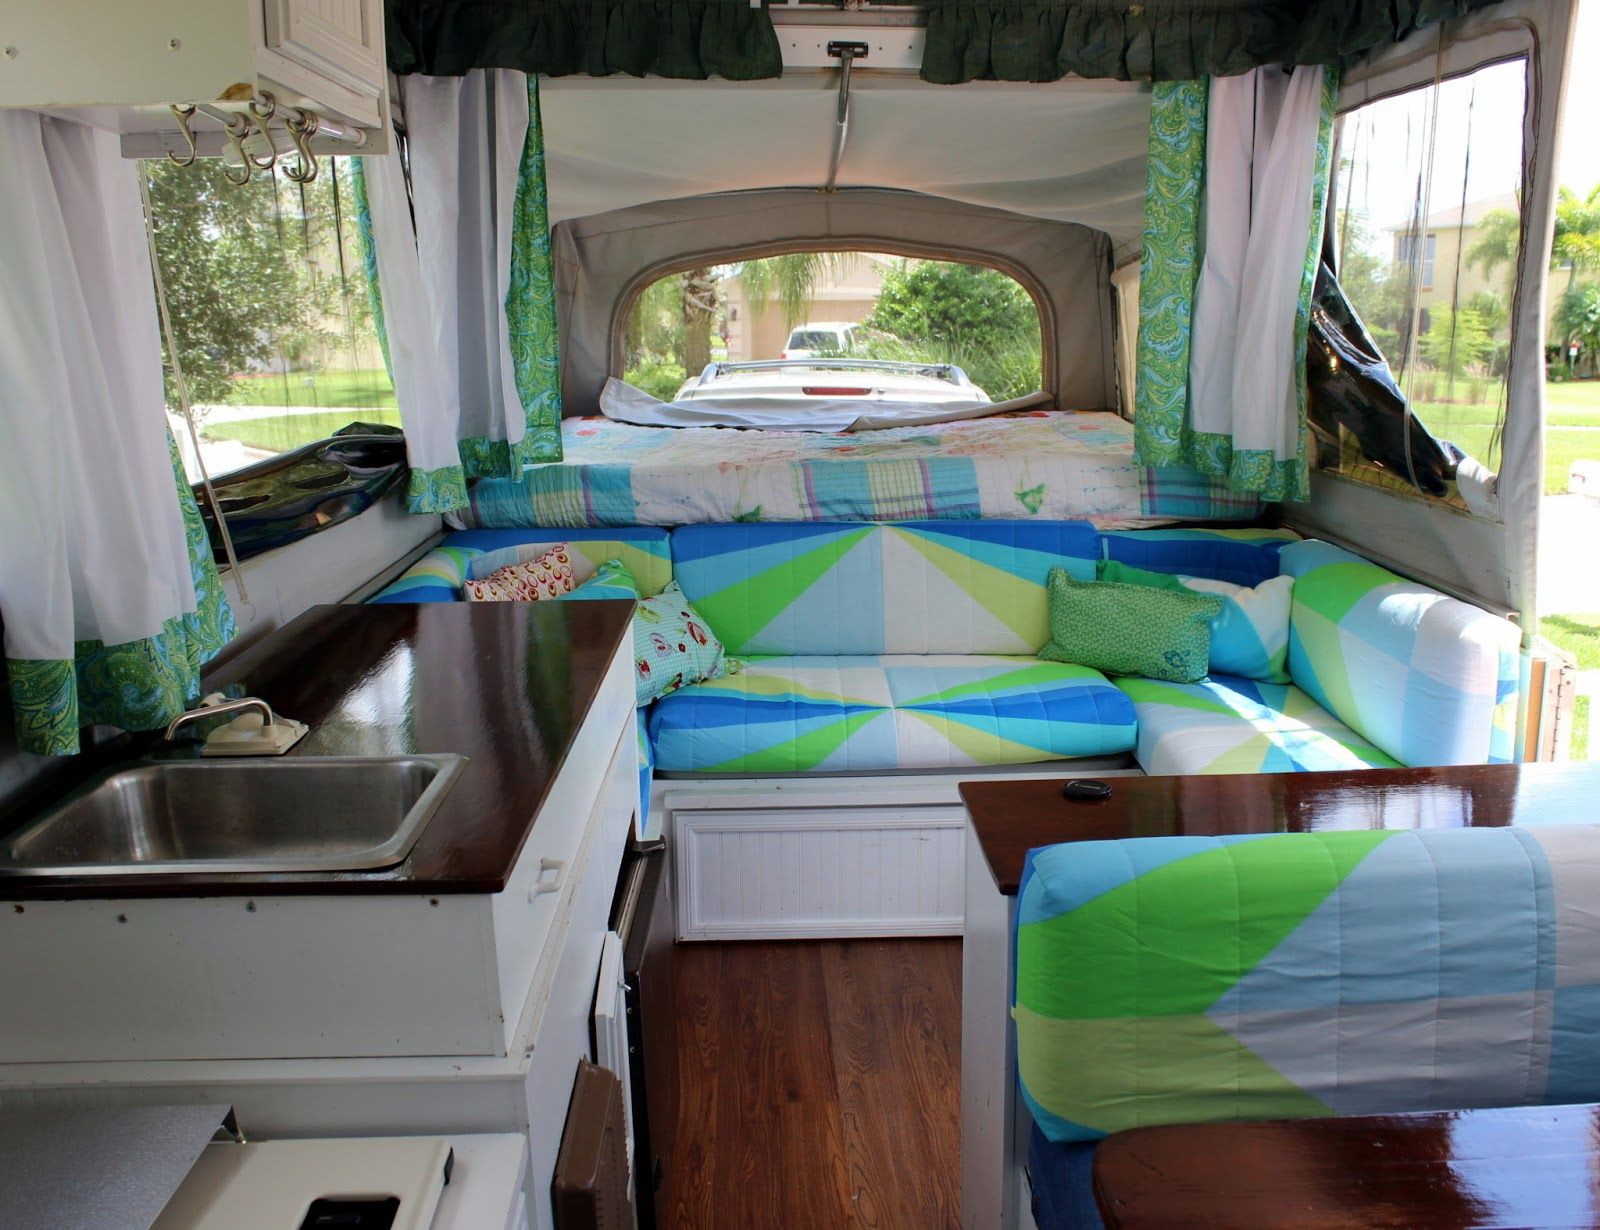 pop up camper curtains         Because I m Me Jayco 1207. pop up camper curtains         Because I m Me Jayco 1207 pop up